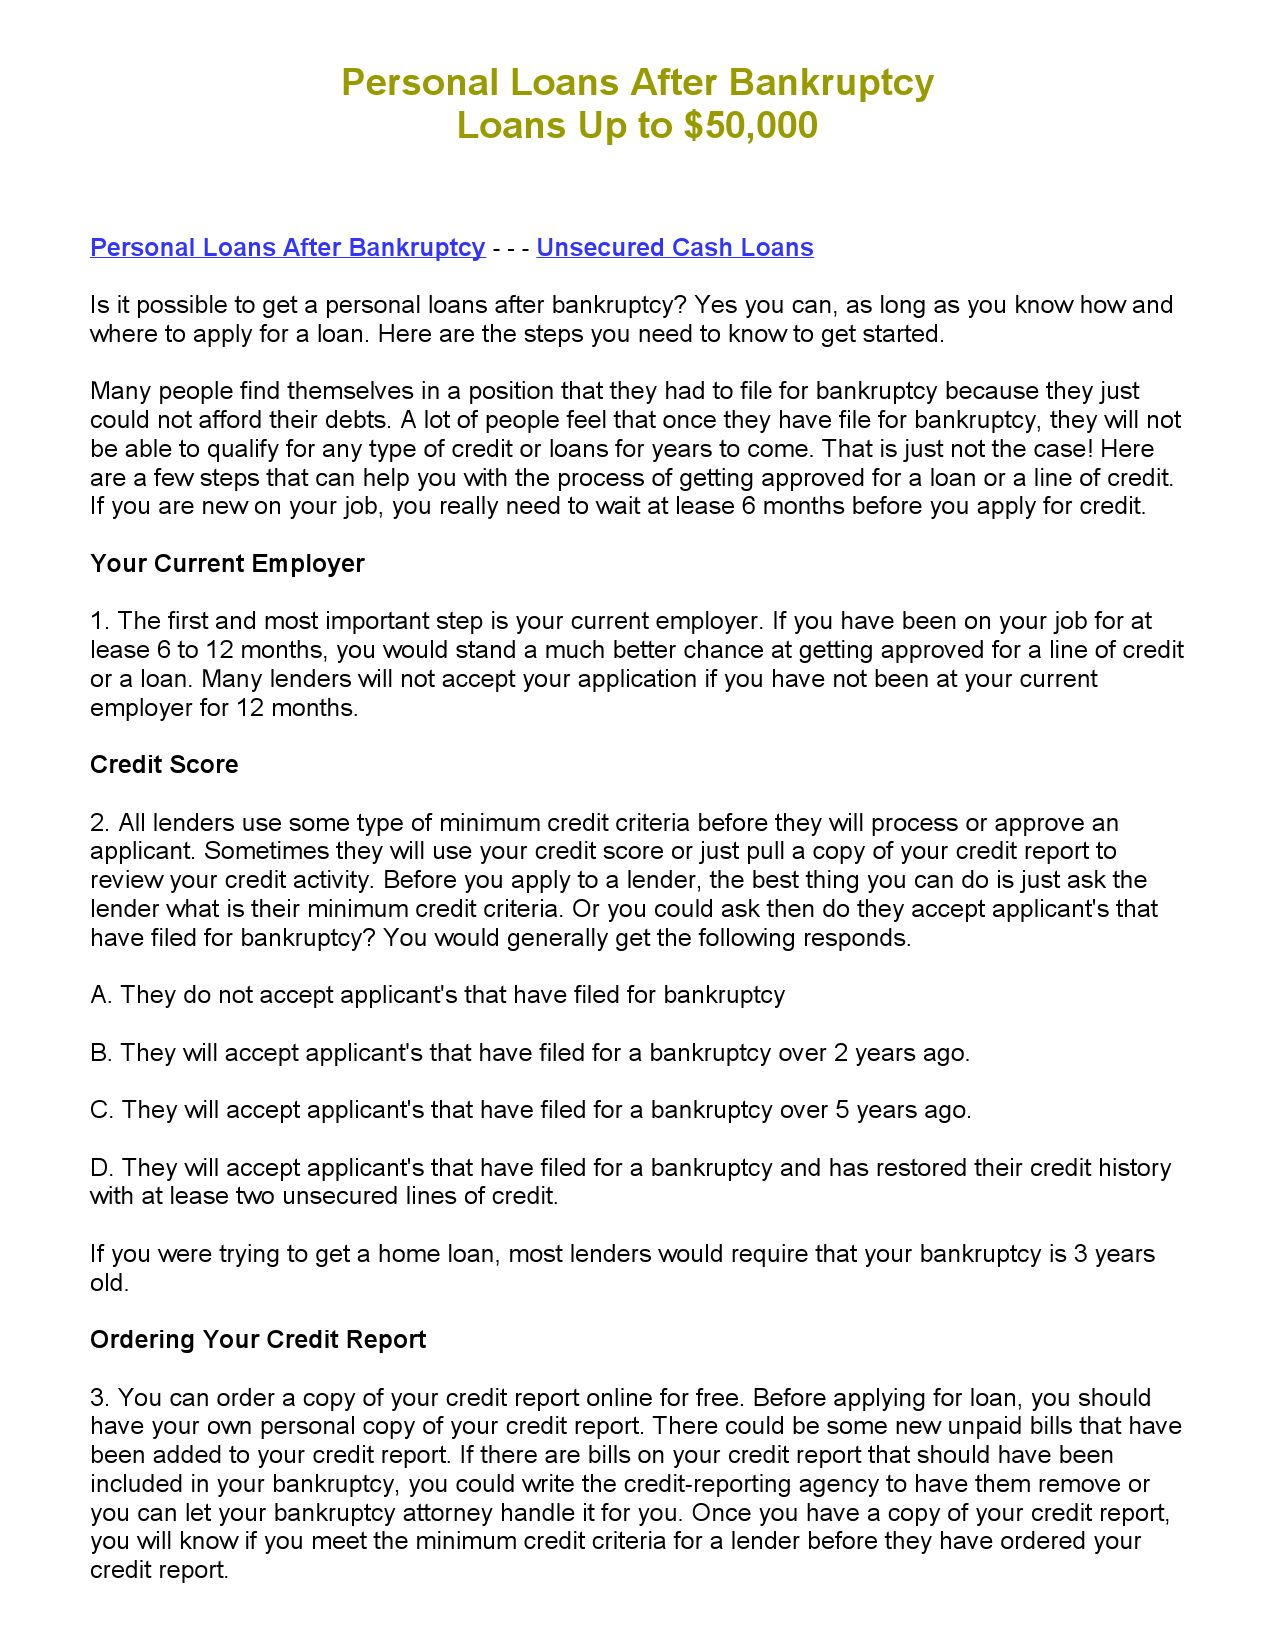 Personal Loans After Bankruptcy By Steve Williams